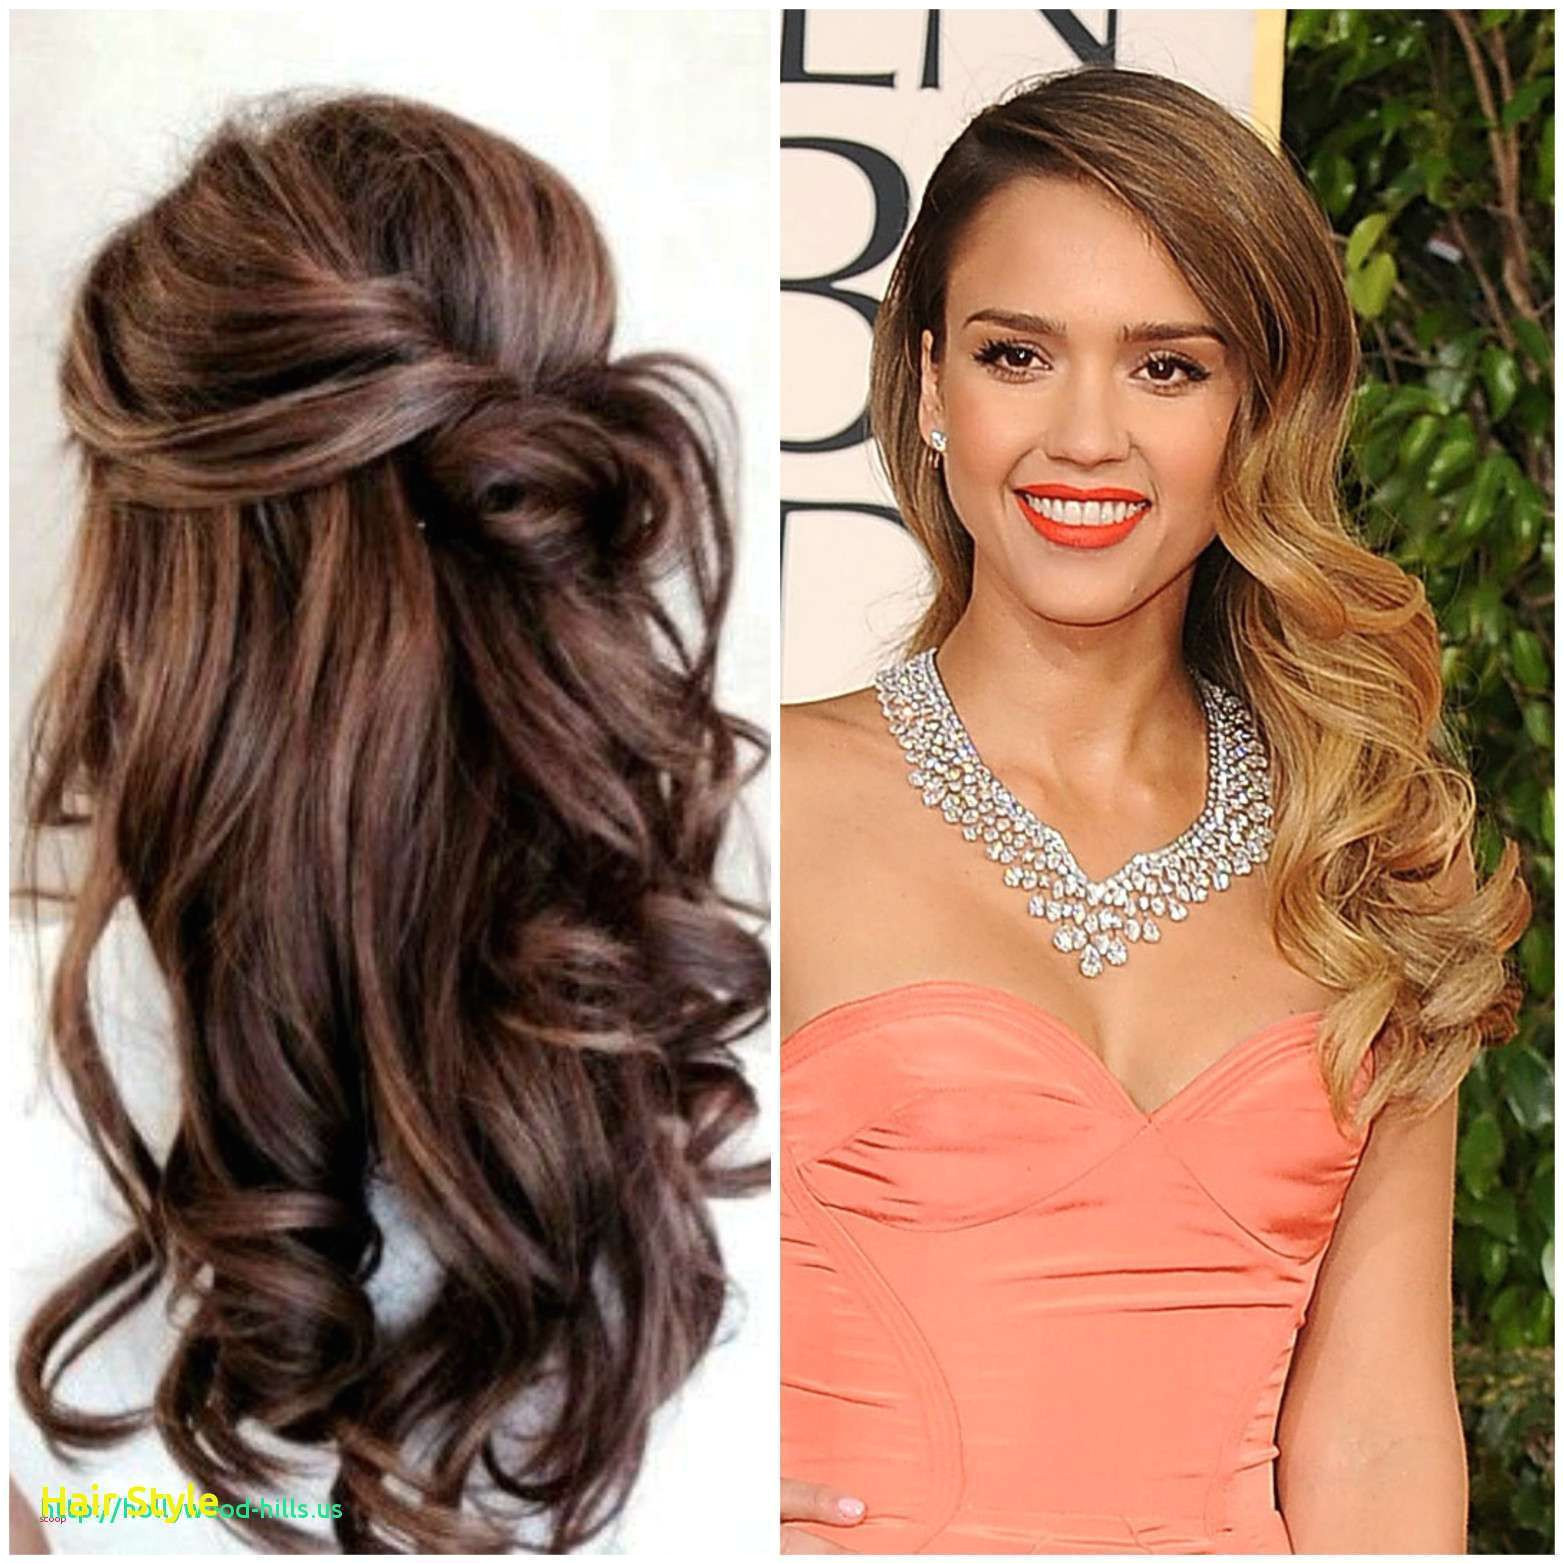 Easy Do It Yourself Hairstyles Inspirational Awesome Easy Hairstyles You Can Do Yourself